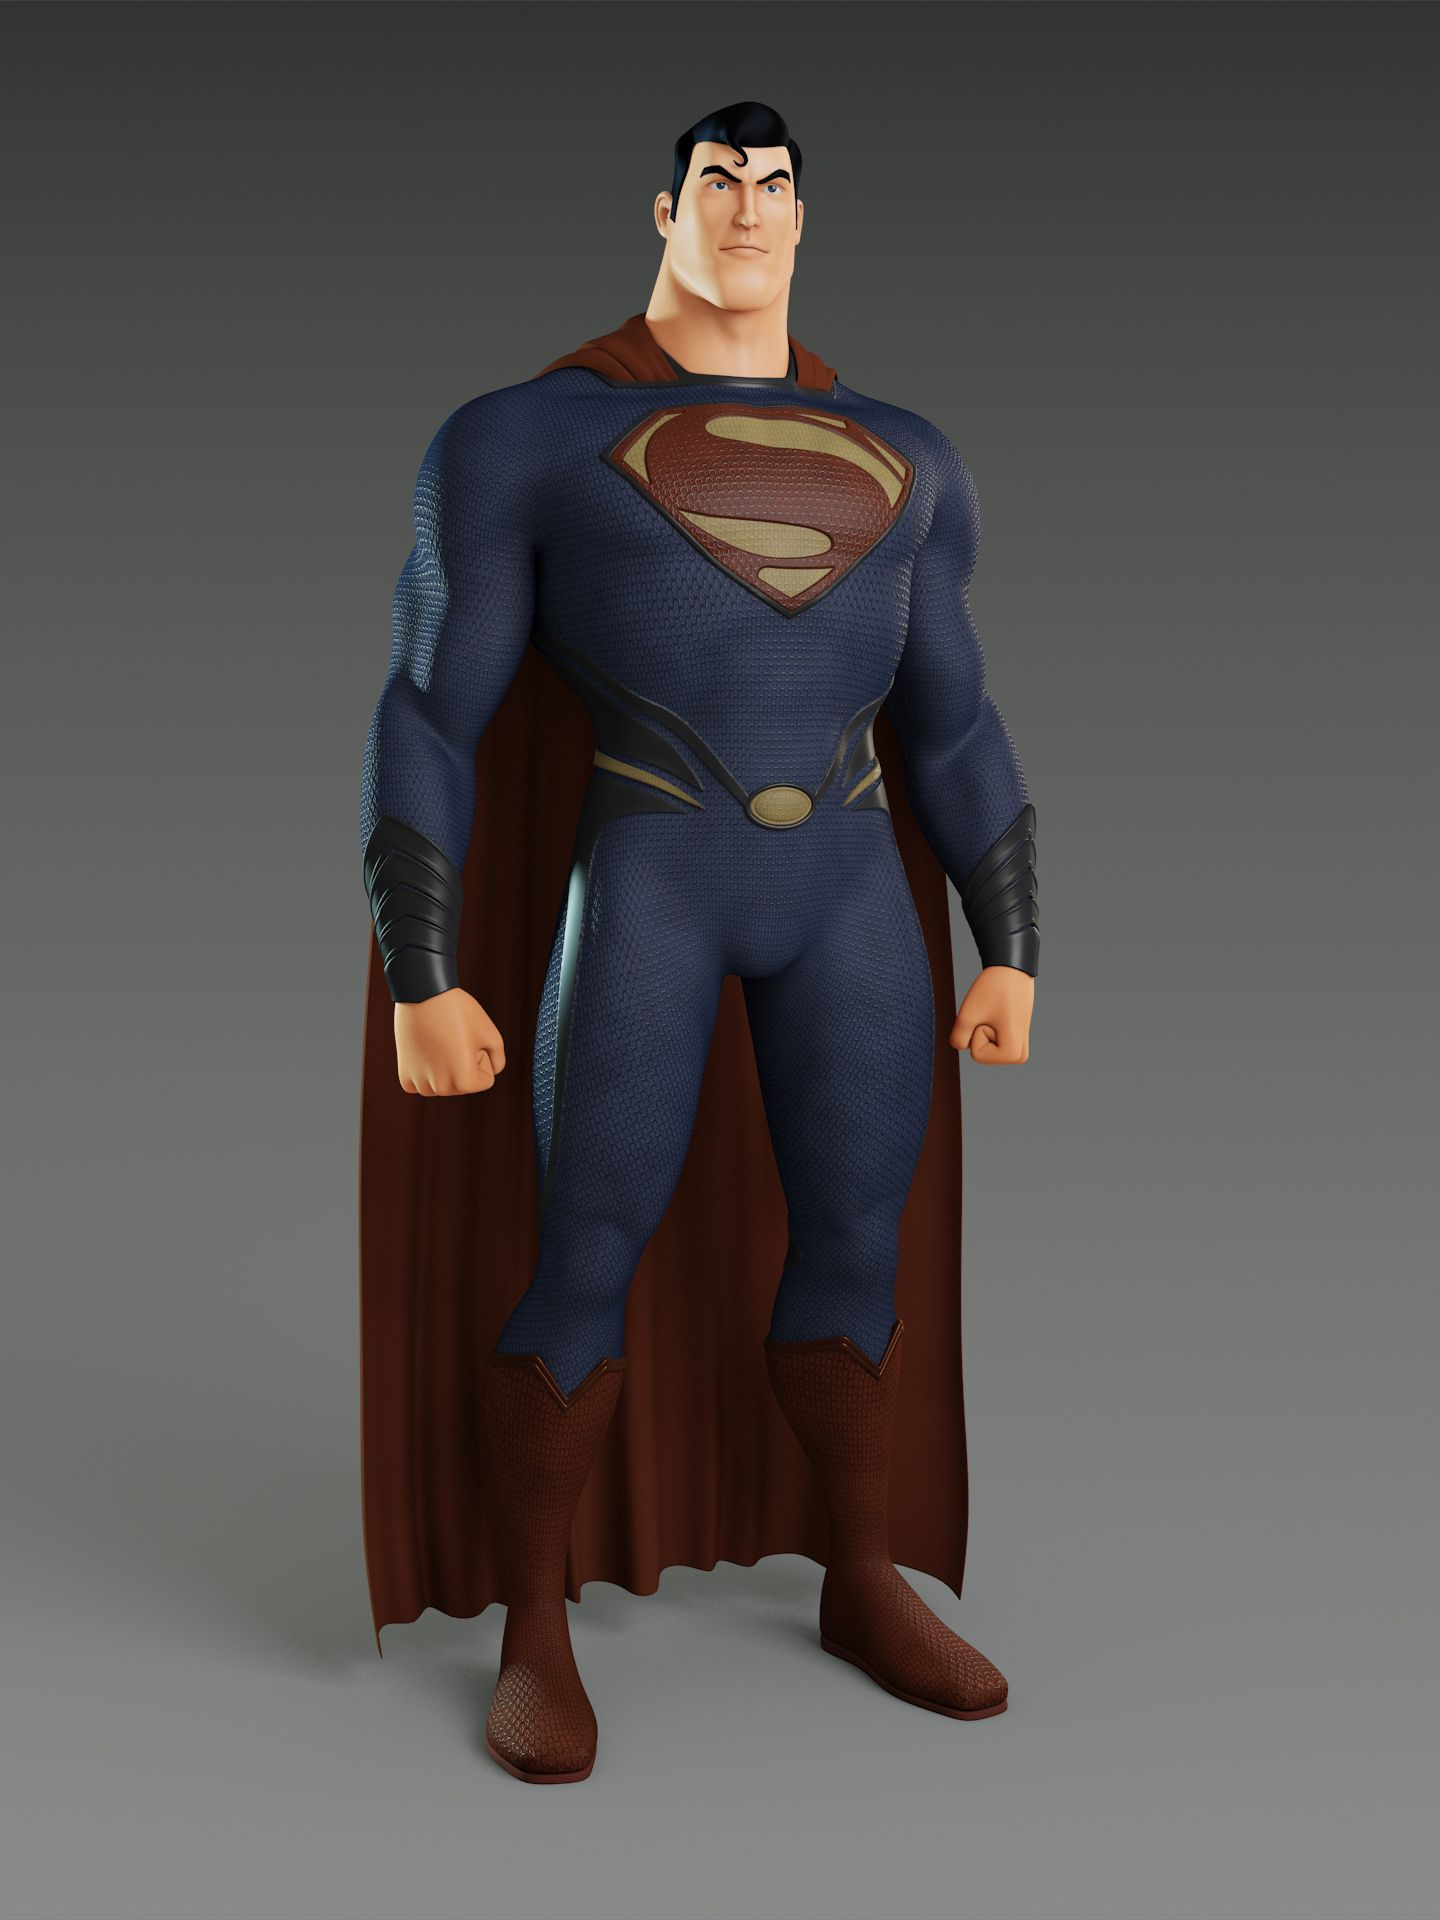 Man of steel pixar style wow we may get a pixar style marvel man of steel pixar style wow we may get a pixar style biocorpaavc